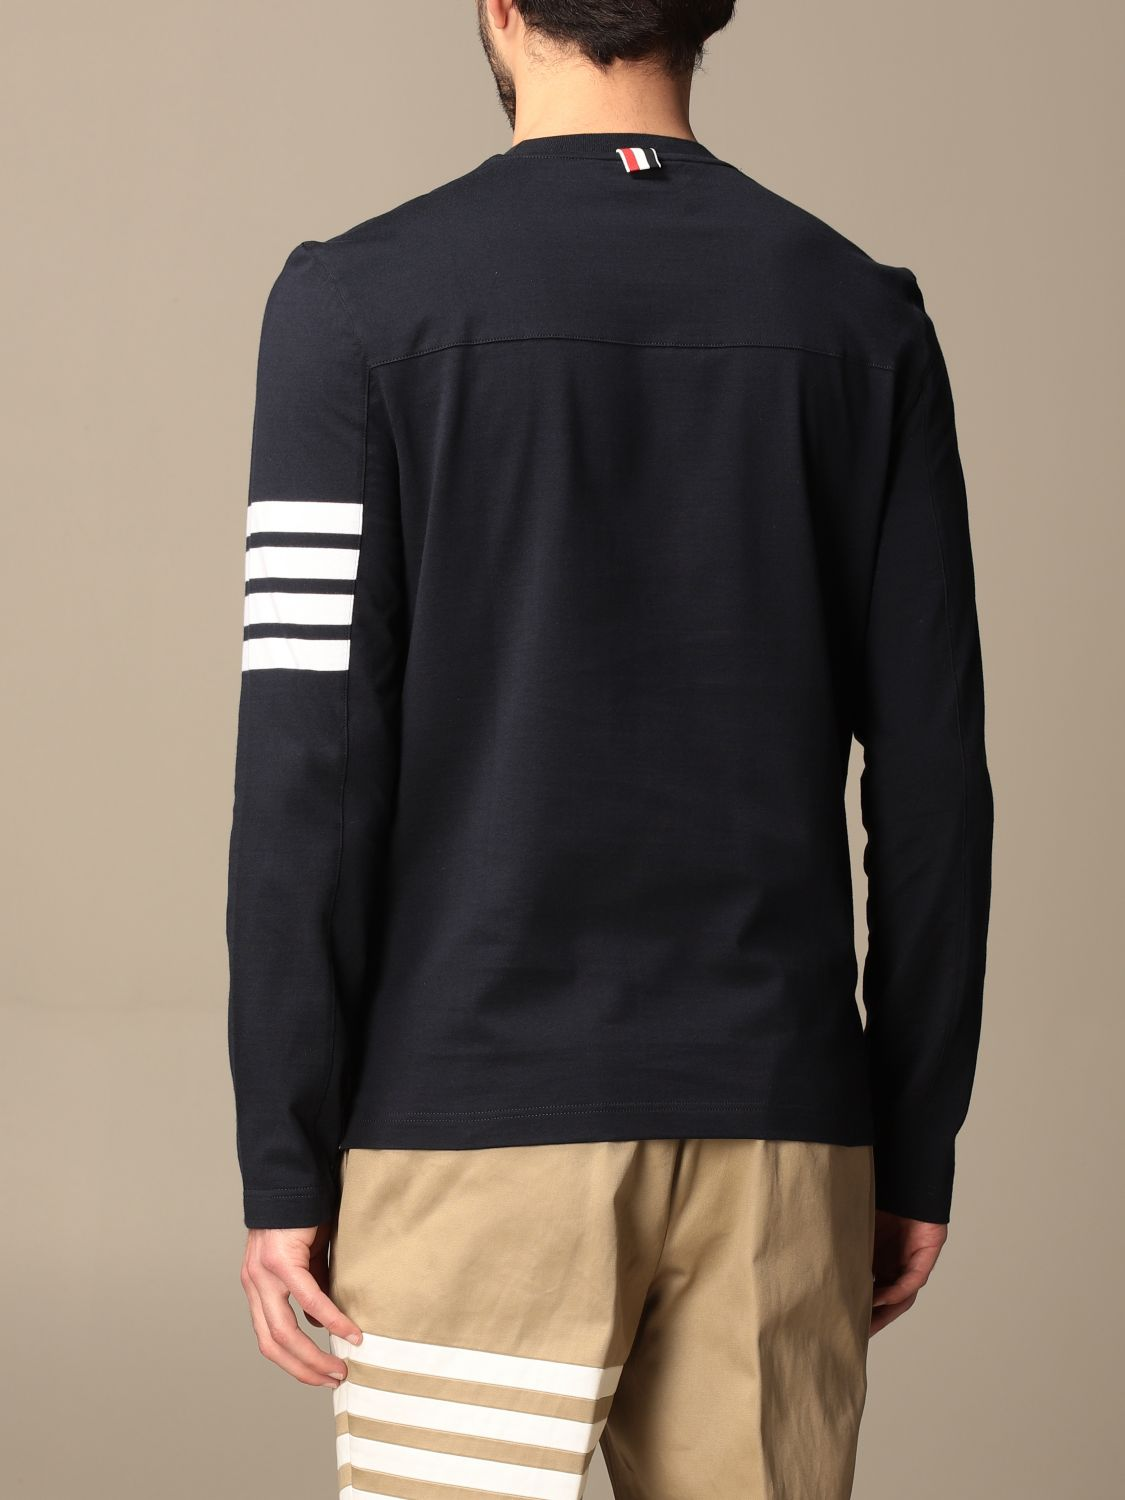 T-shirt Thom Browne: T-shirt Thom Browne in cotone con dettaglio a righe blue navy 3